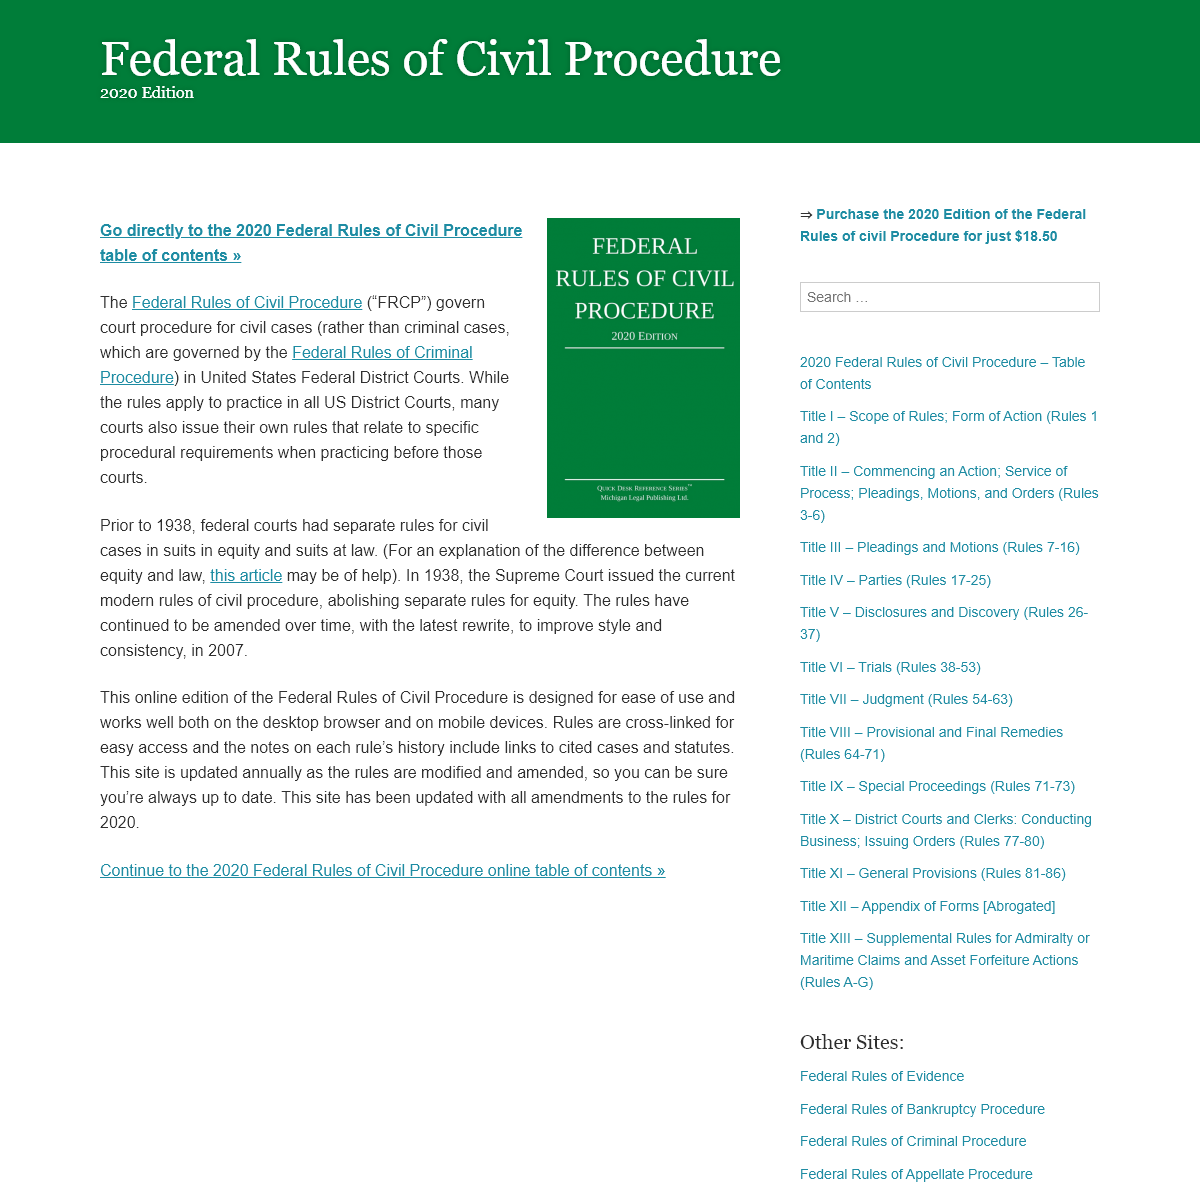 Federal Rules of Civil Procedure - 2020 Official Edition